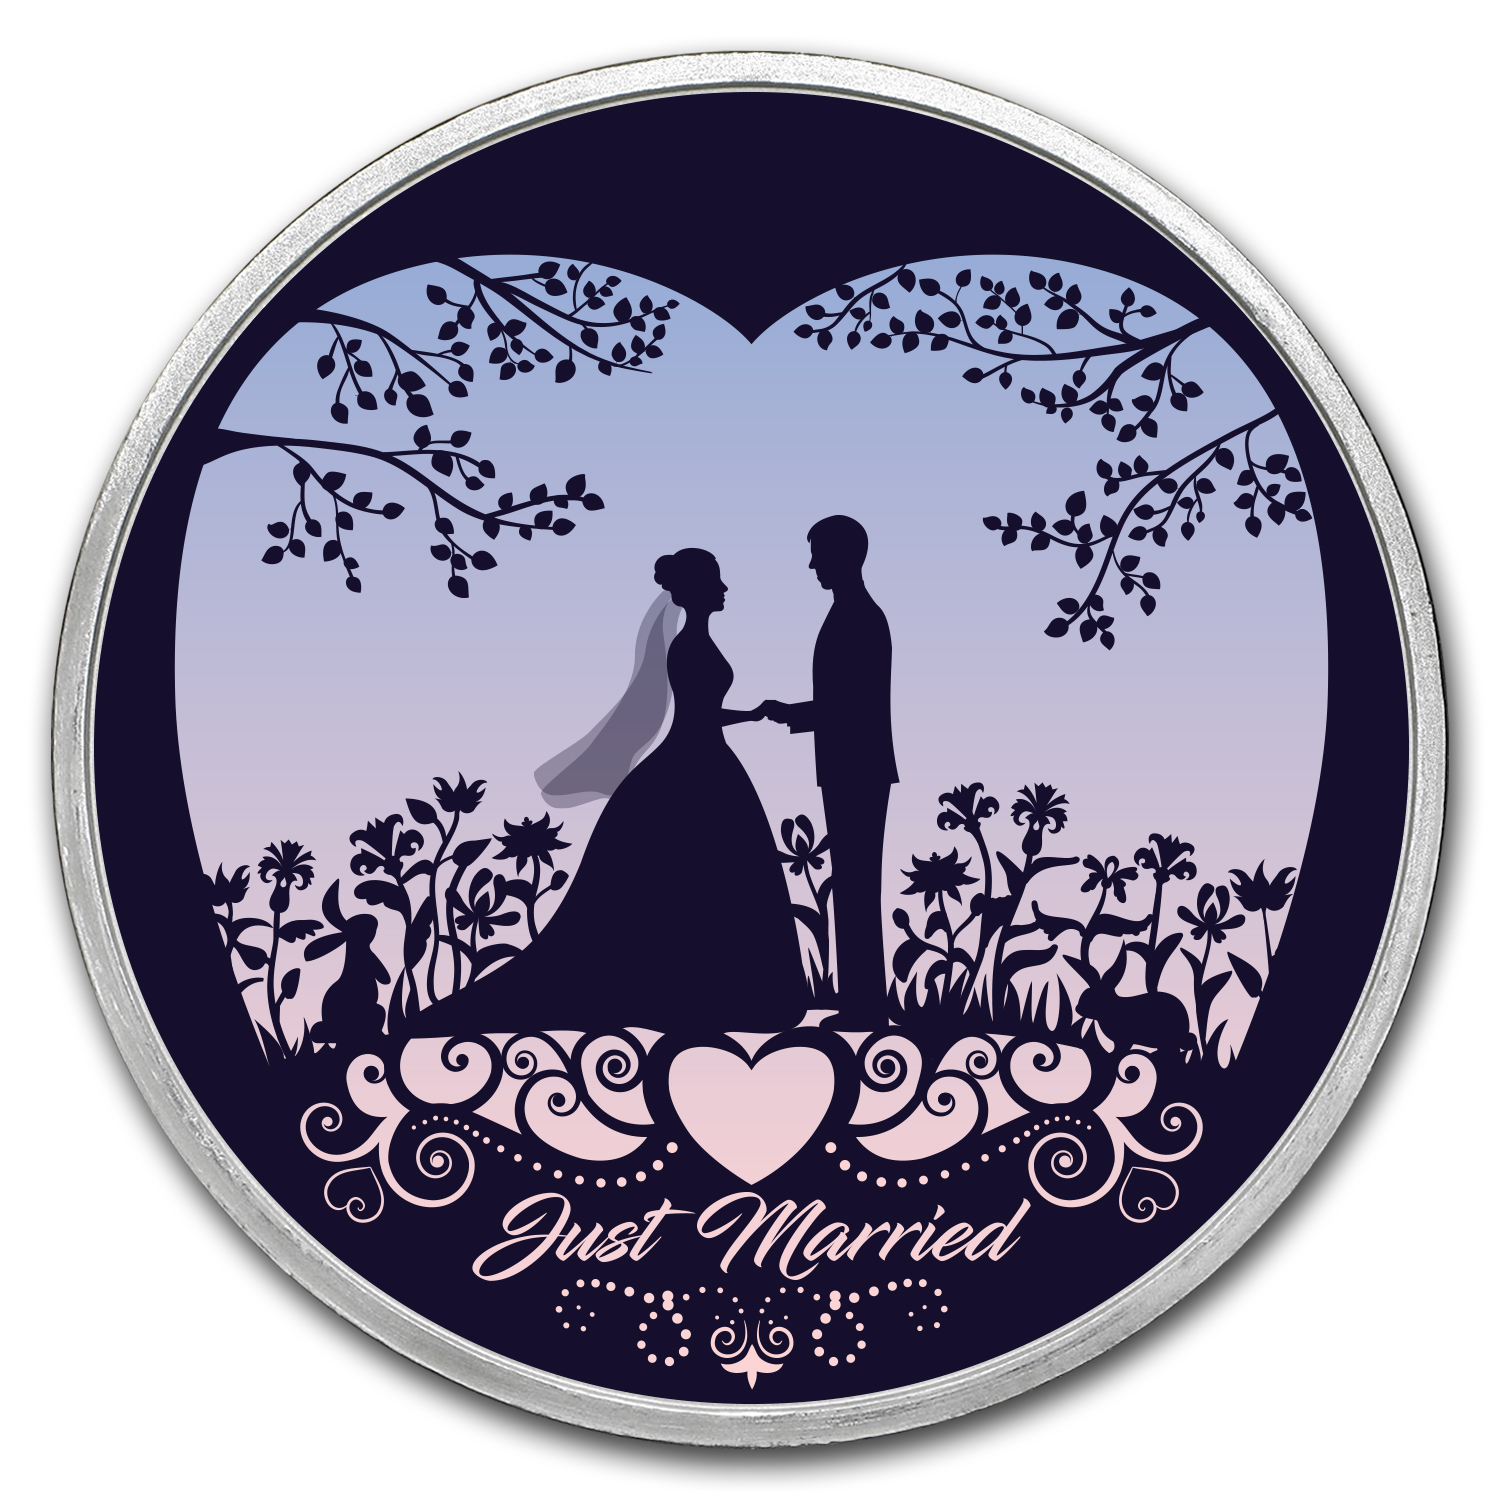 Buy 1 Oz Silver Colorized Round Just Married Silhouette